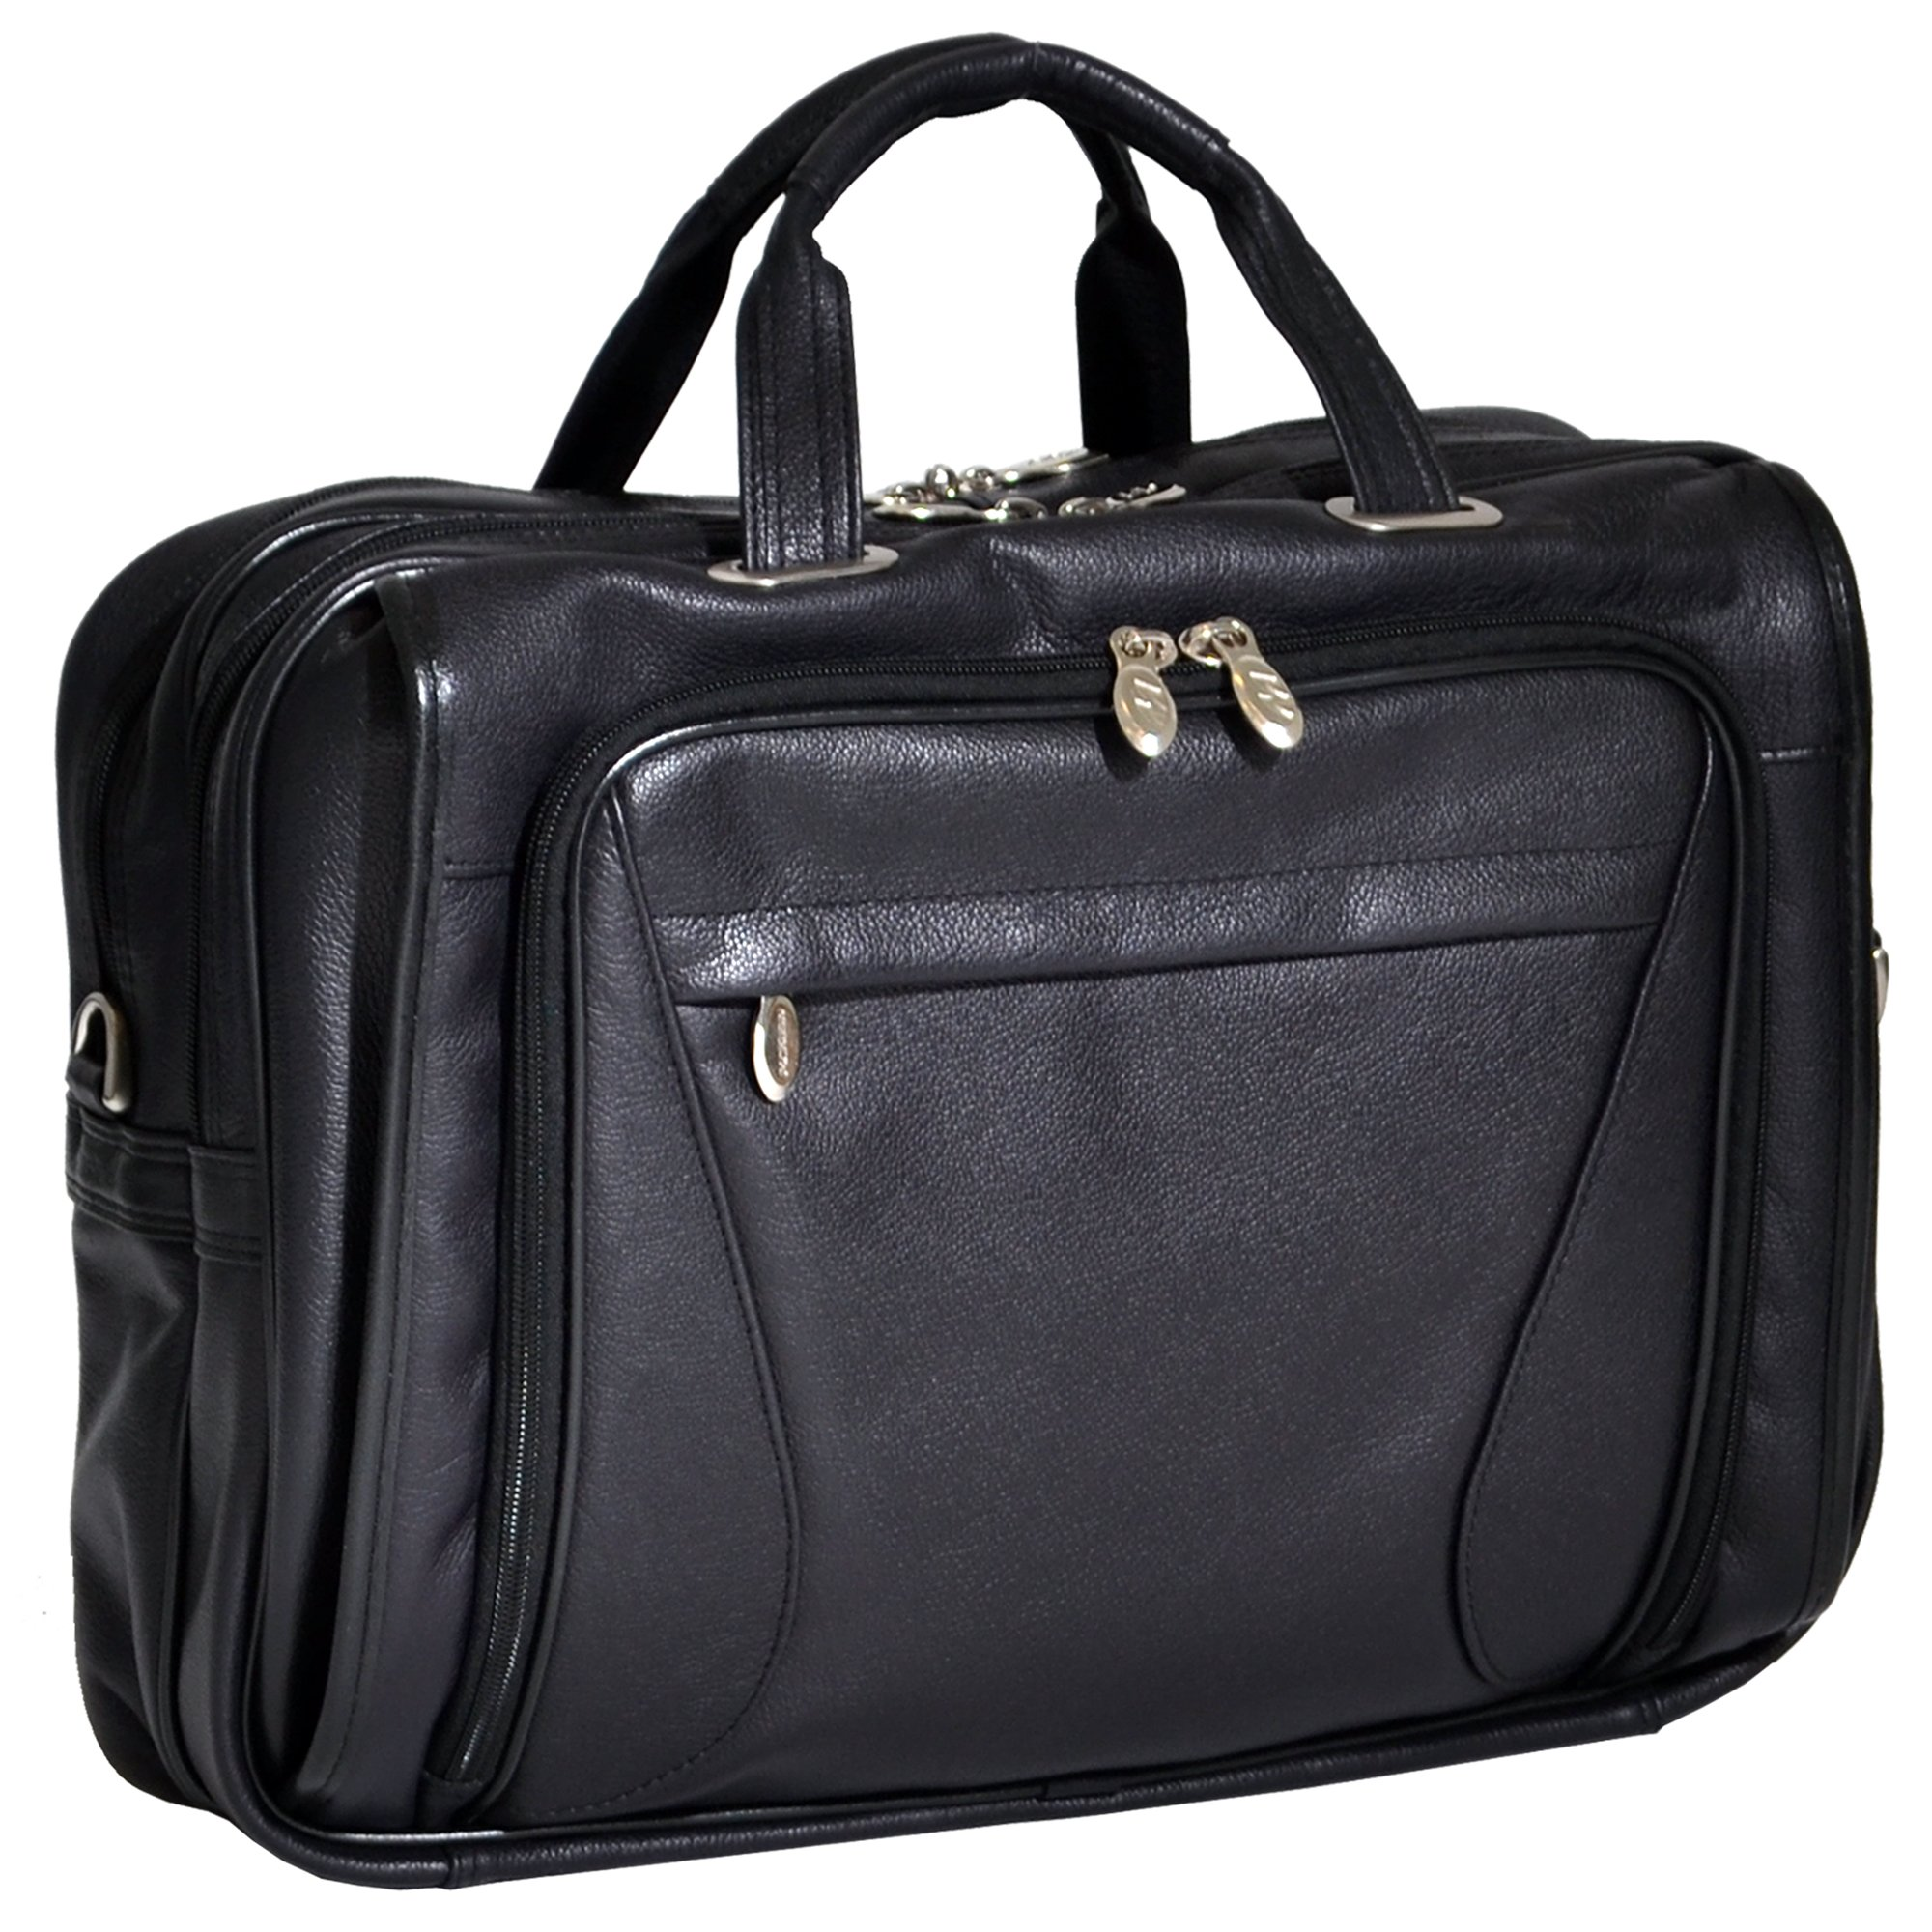 McKlein USA Irving Park Leather Double Compartment Laptop Case 15575 by Mcklein